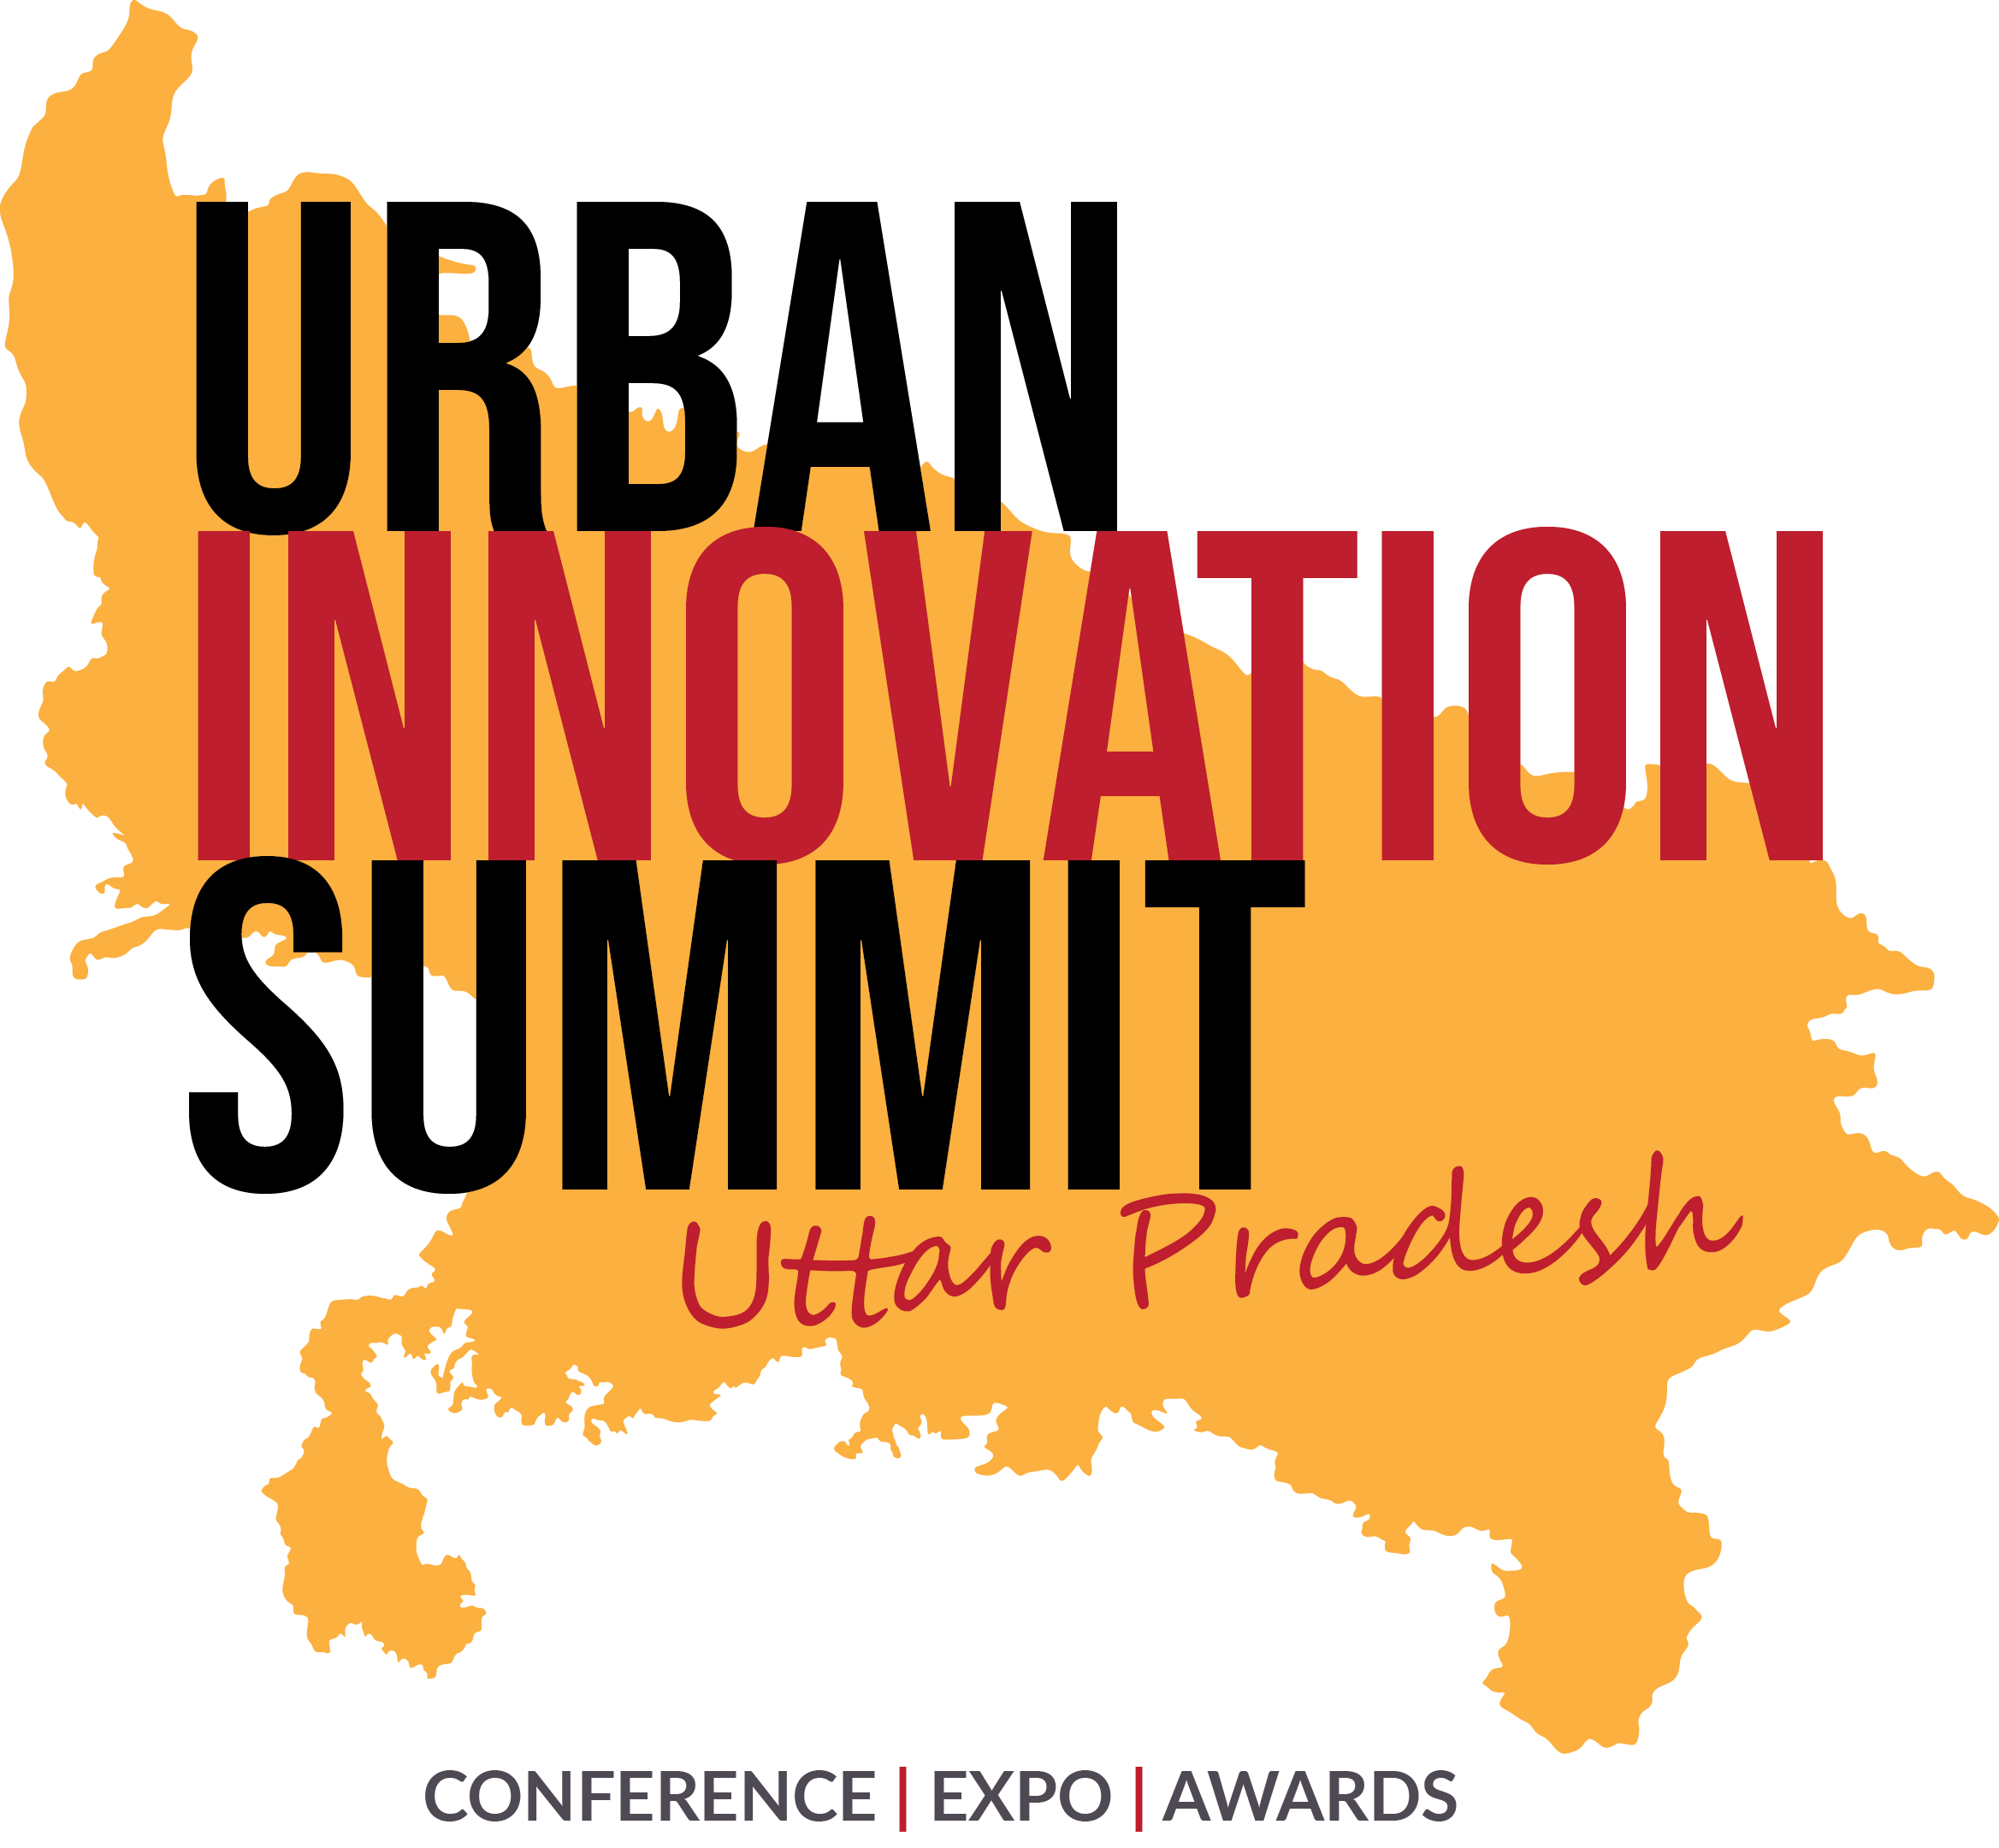 Urban Innovation Summit, Lucknow